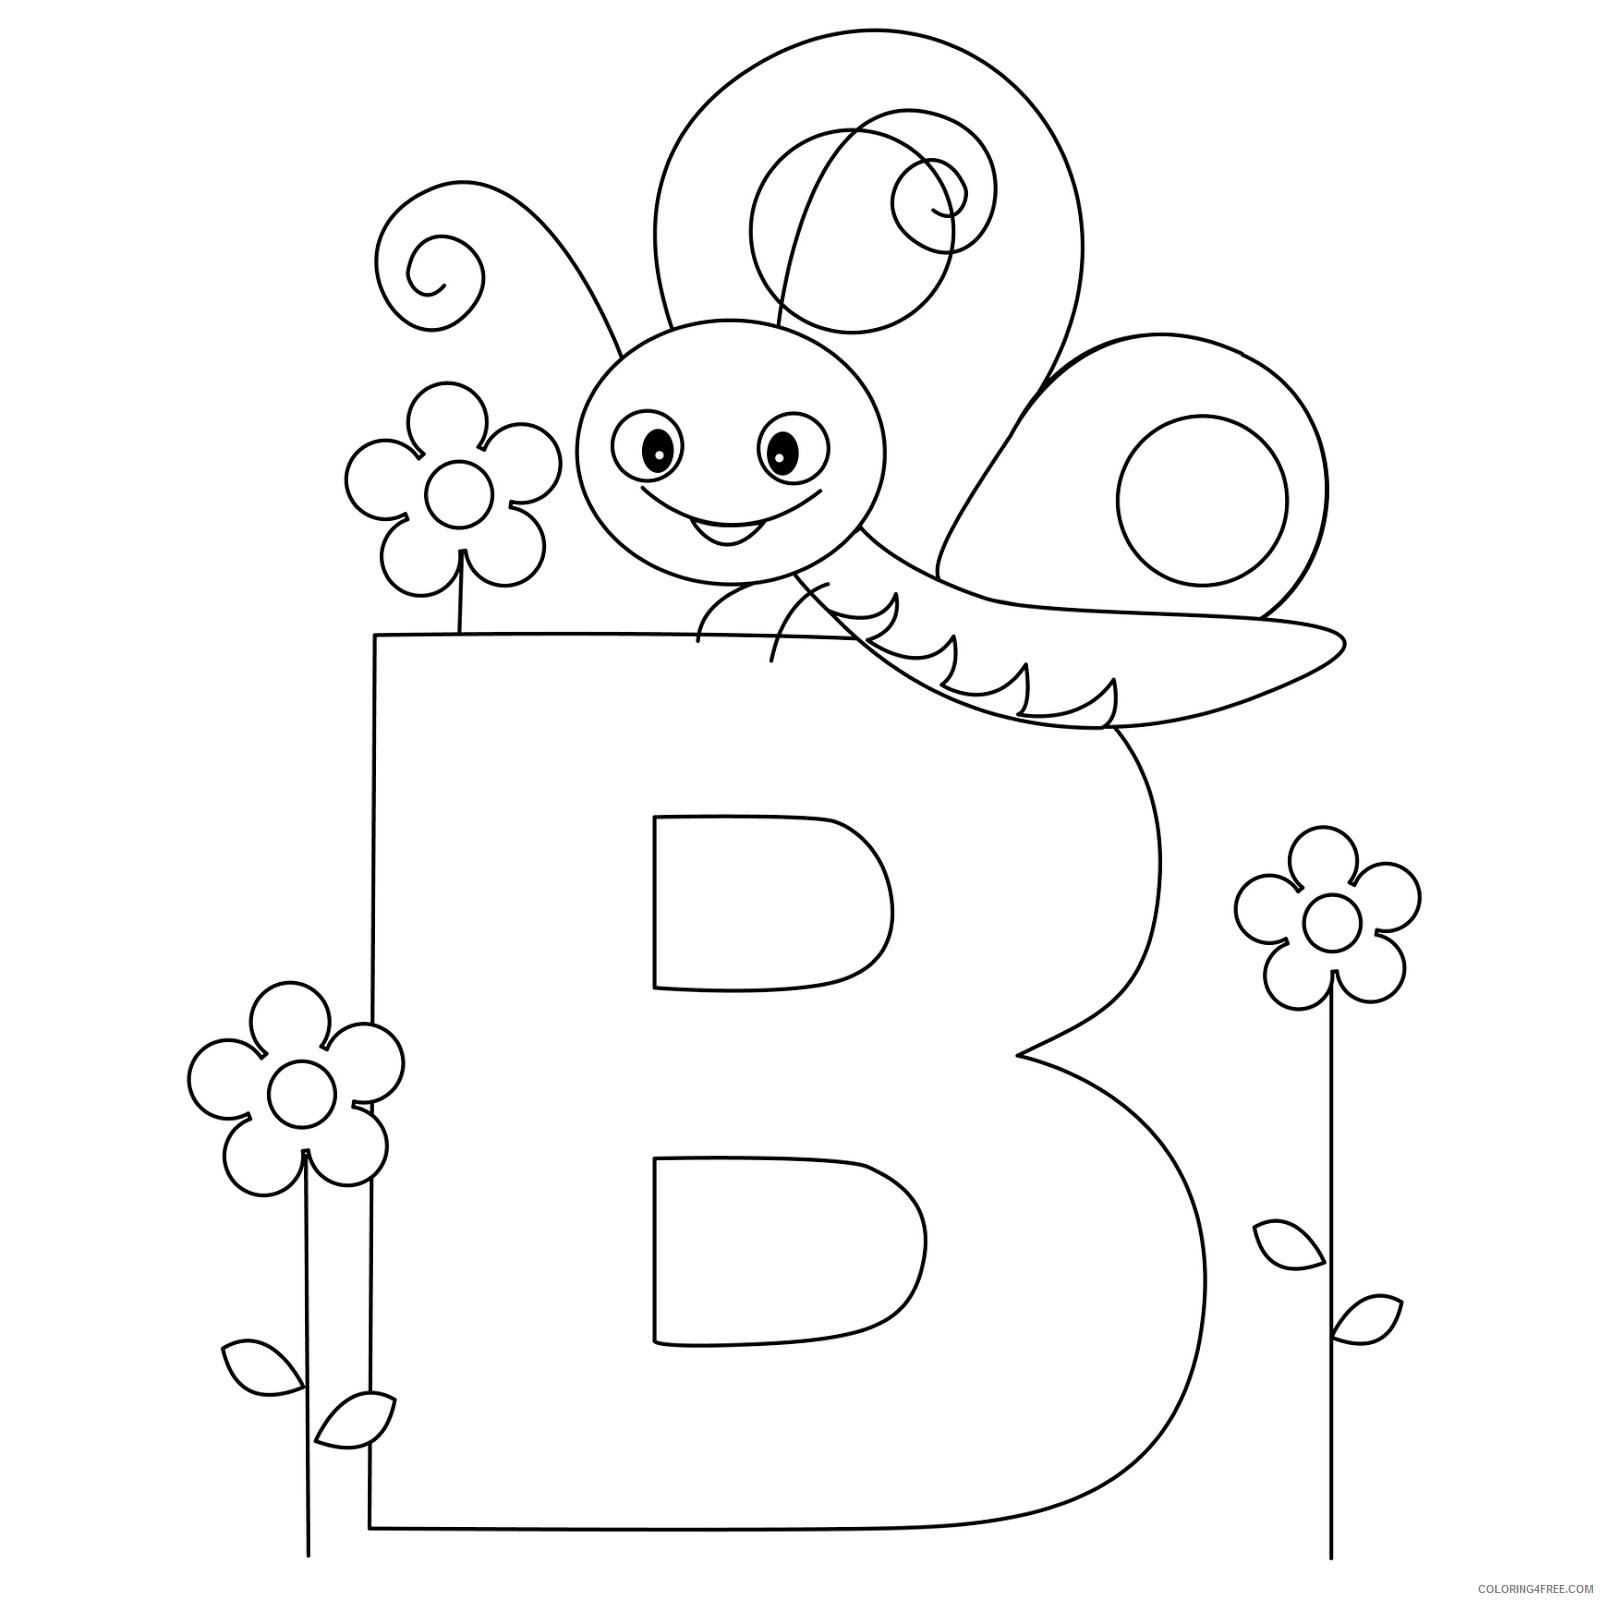 abc coloring pages b for butterfly Coloring4free